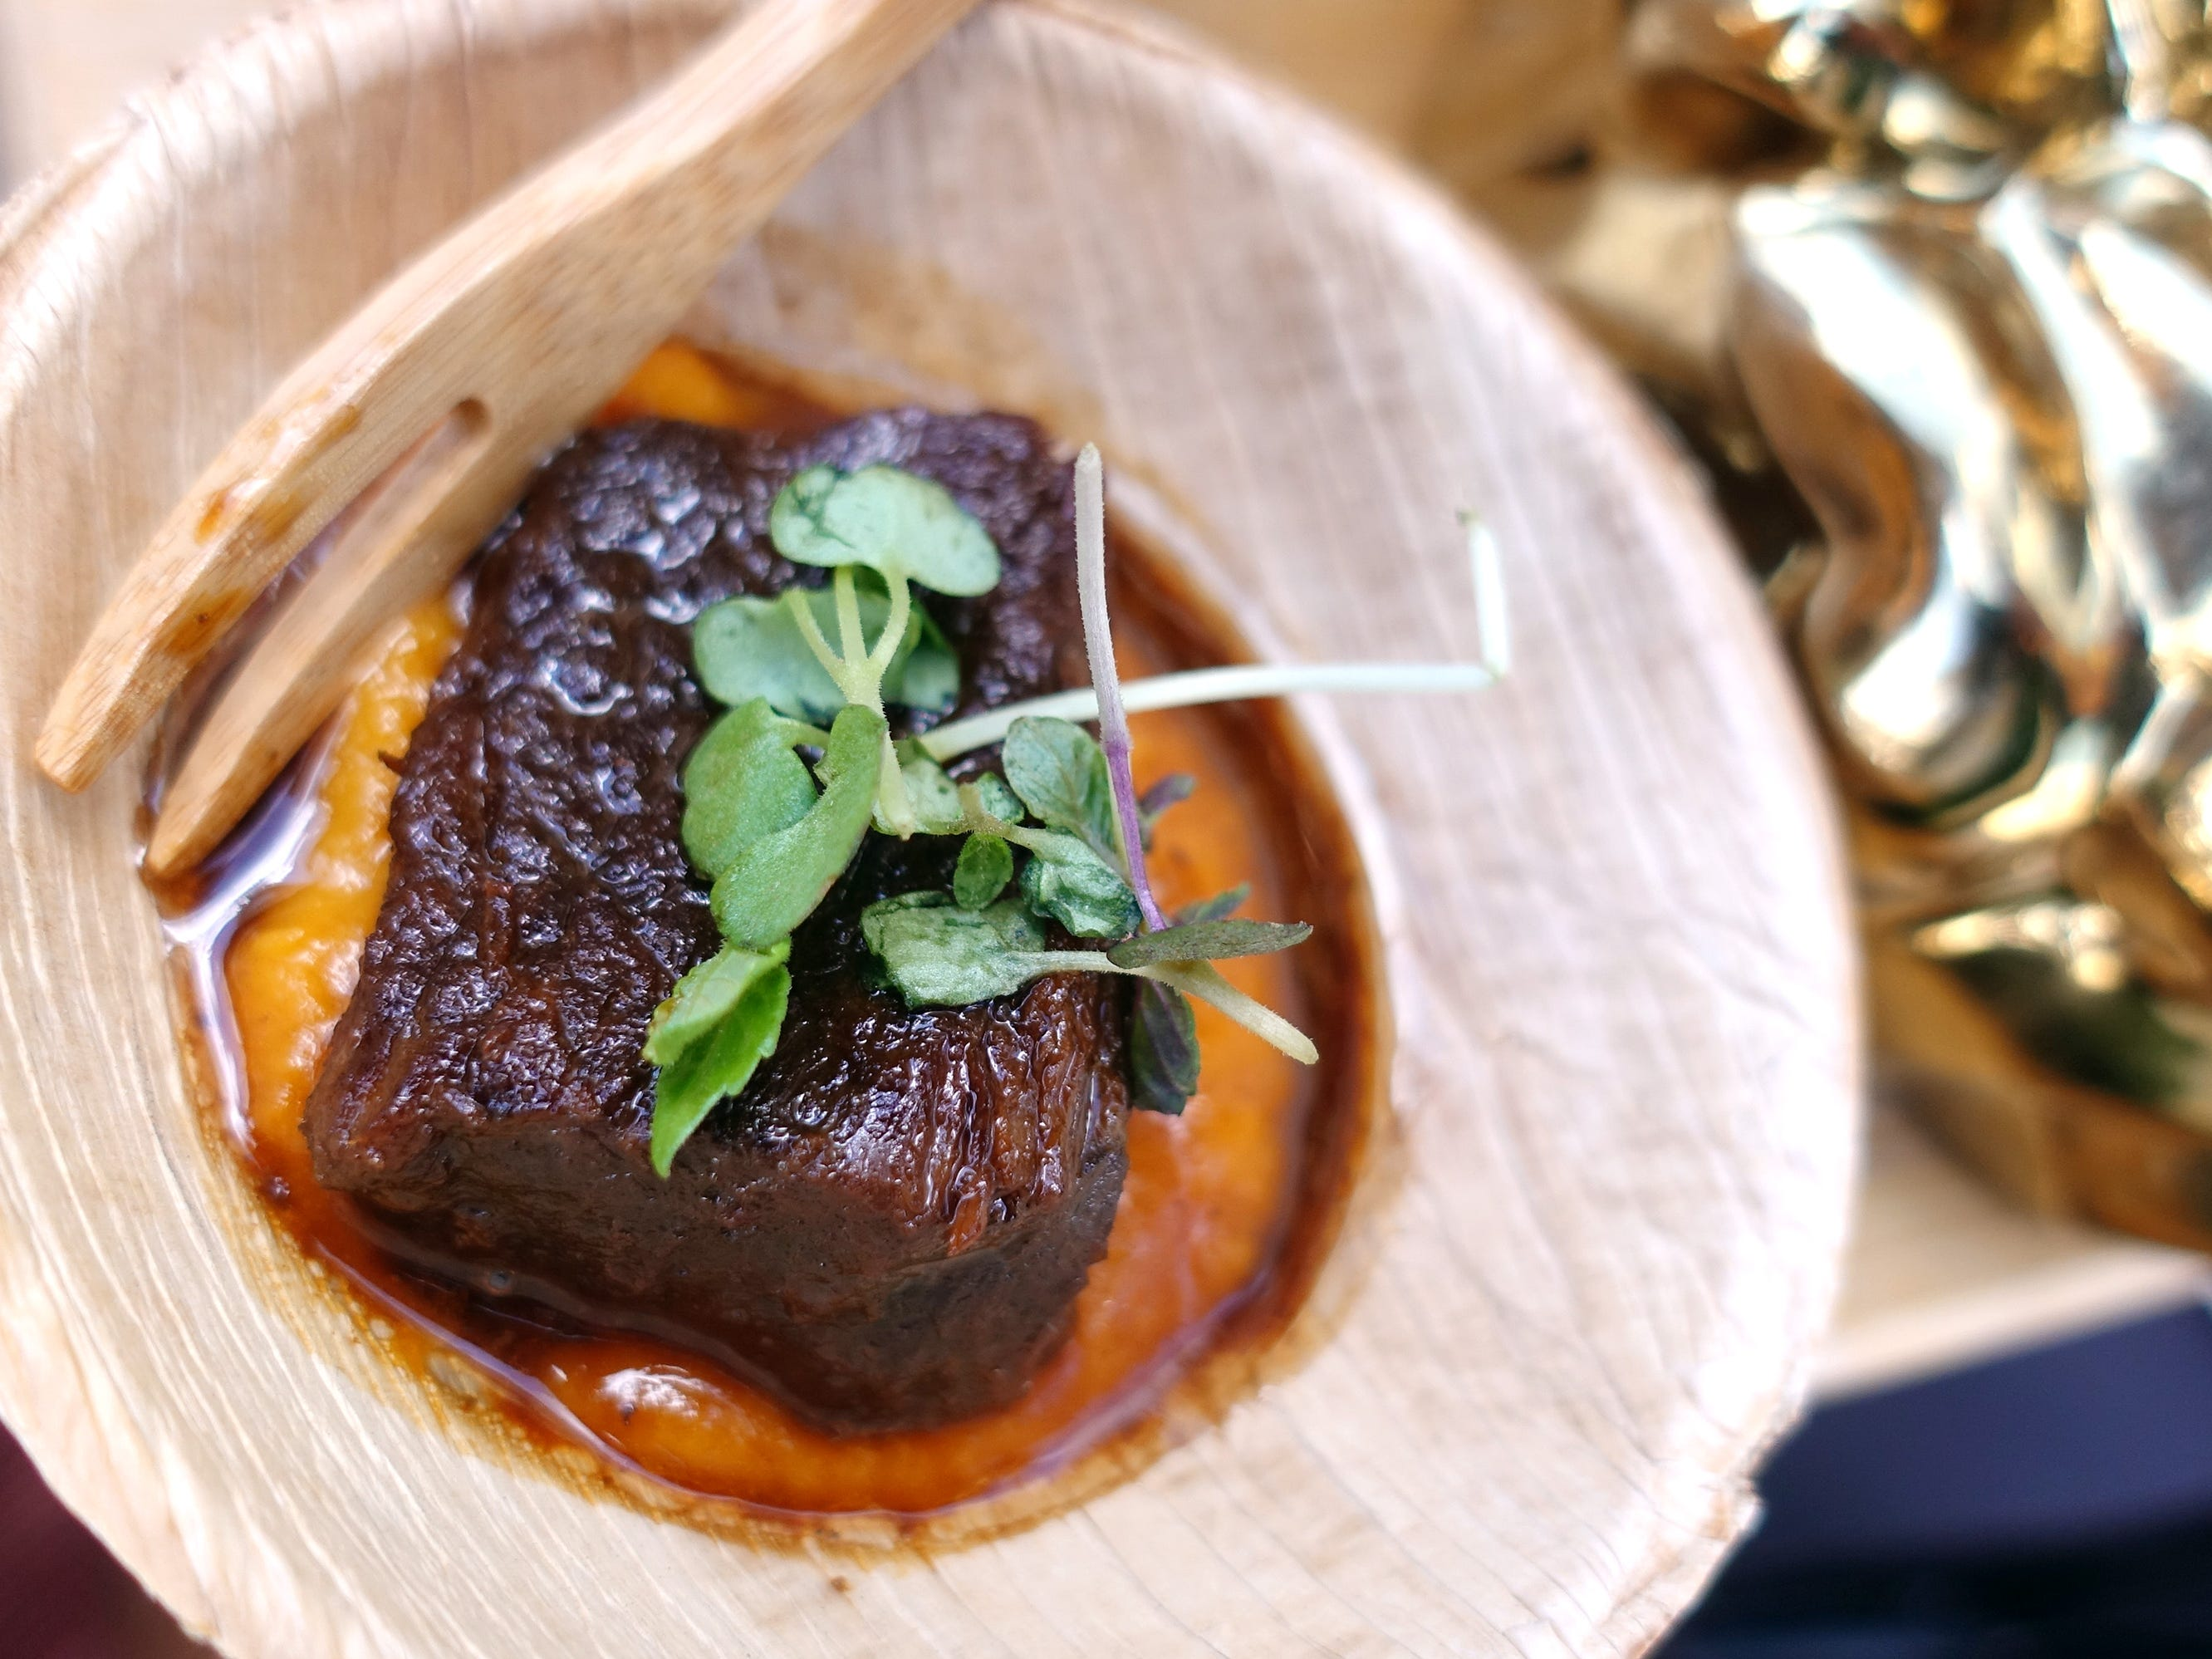 Sweet sake and soy braised short ribs with red garnet potato, shiso and brussels sprouts from Sushi Roku at the 2019 Devour Culinary Classic at the Desert Botanical Garden in Phoenix.